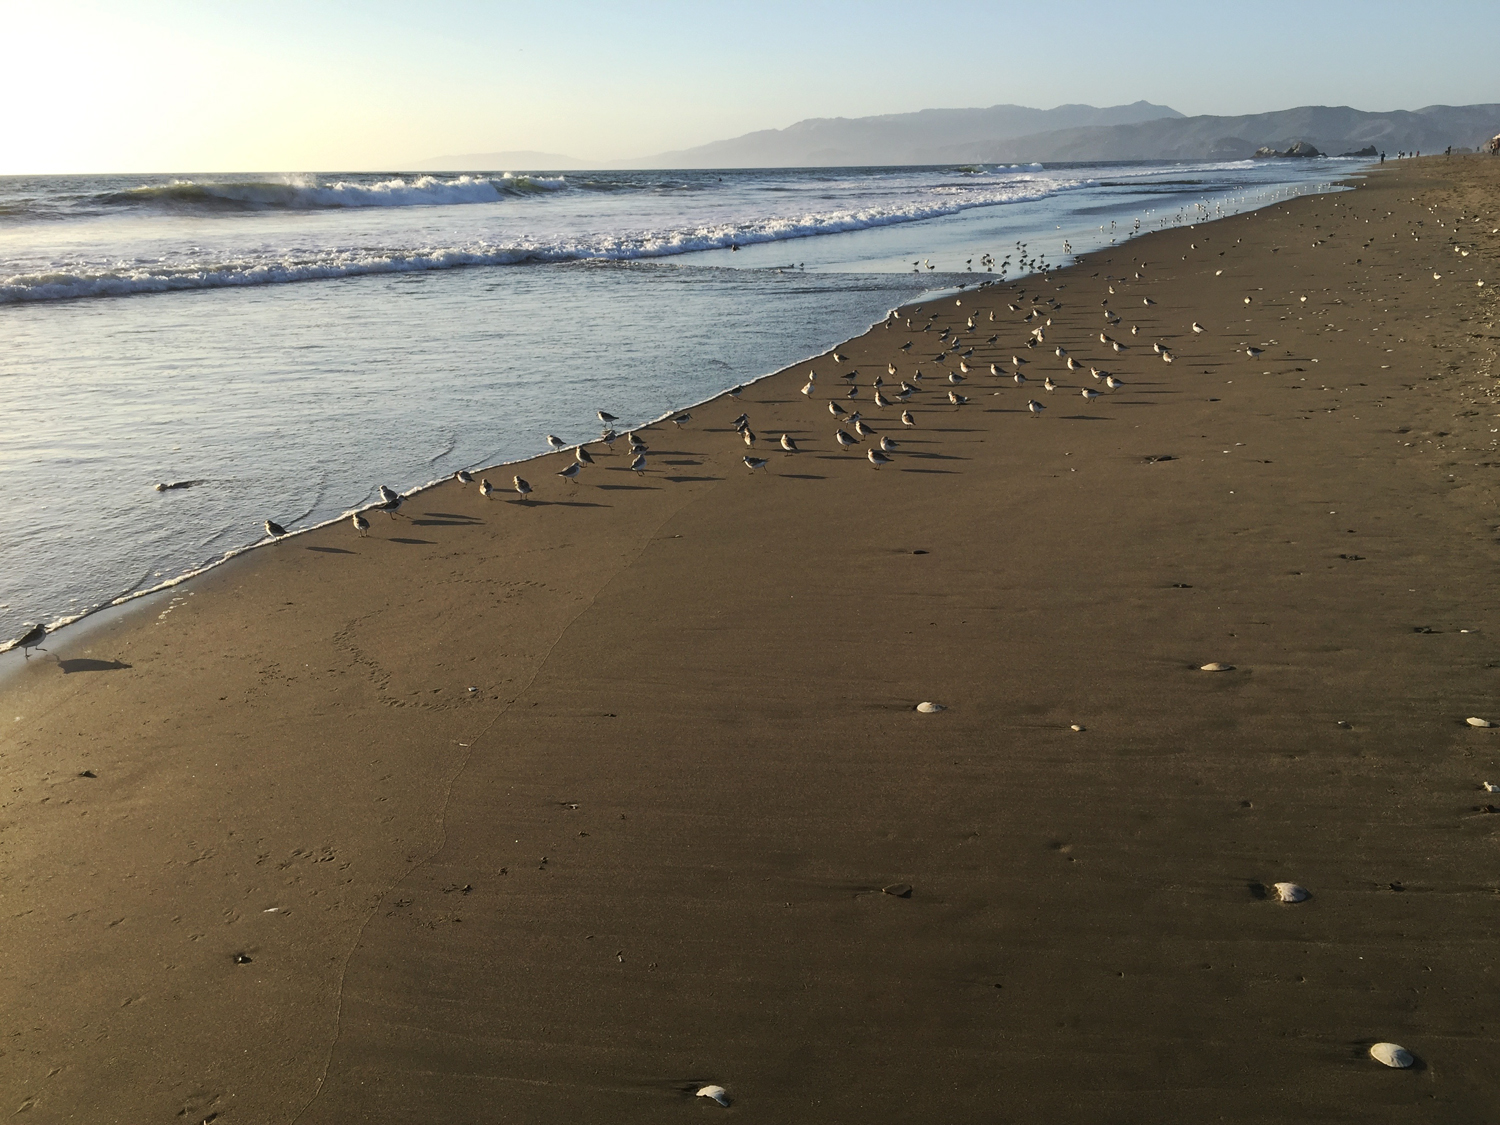 Ocean Beach   6:40 pm   These baby birds led me all the way up the beach.